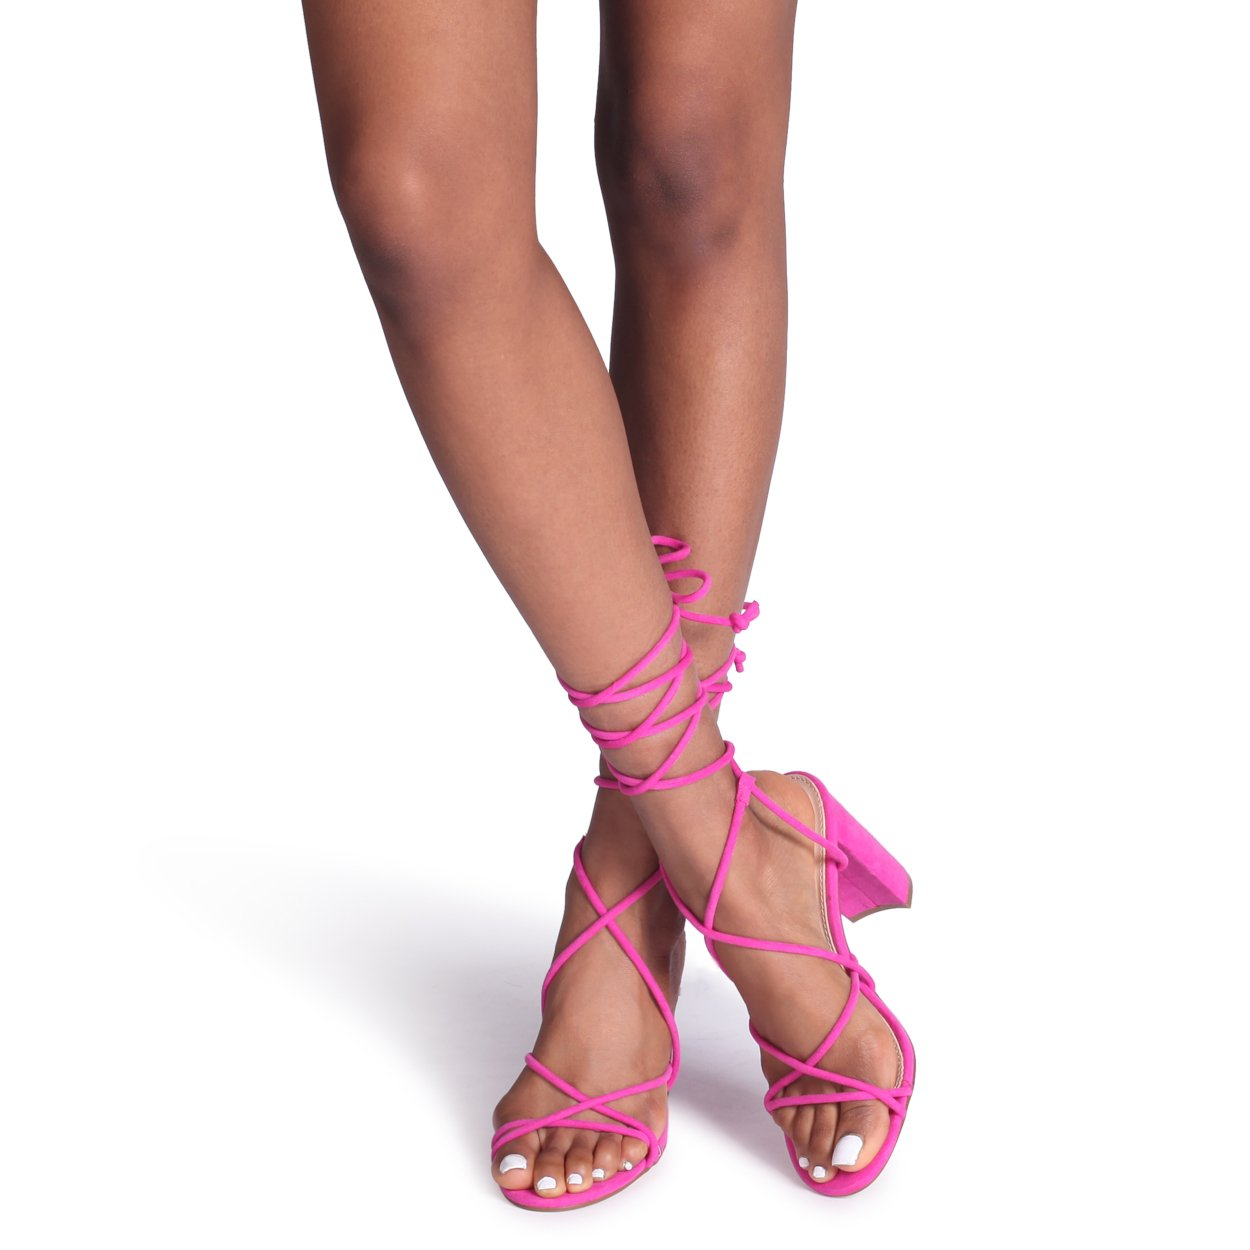 df746ecf650 TWIST - Hot Pink Suede Lace Up Strappy Block Heeled Sandal